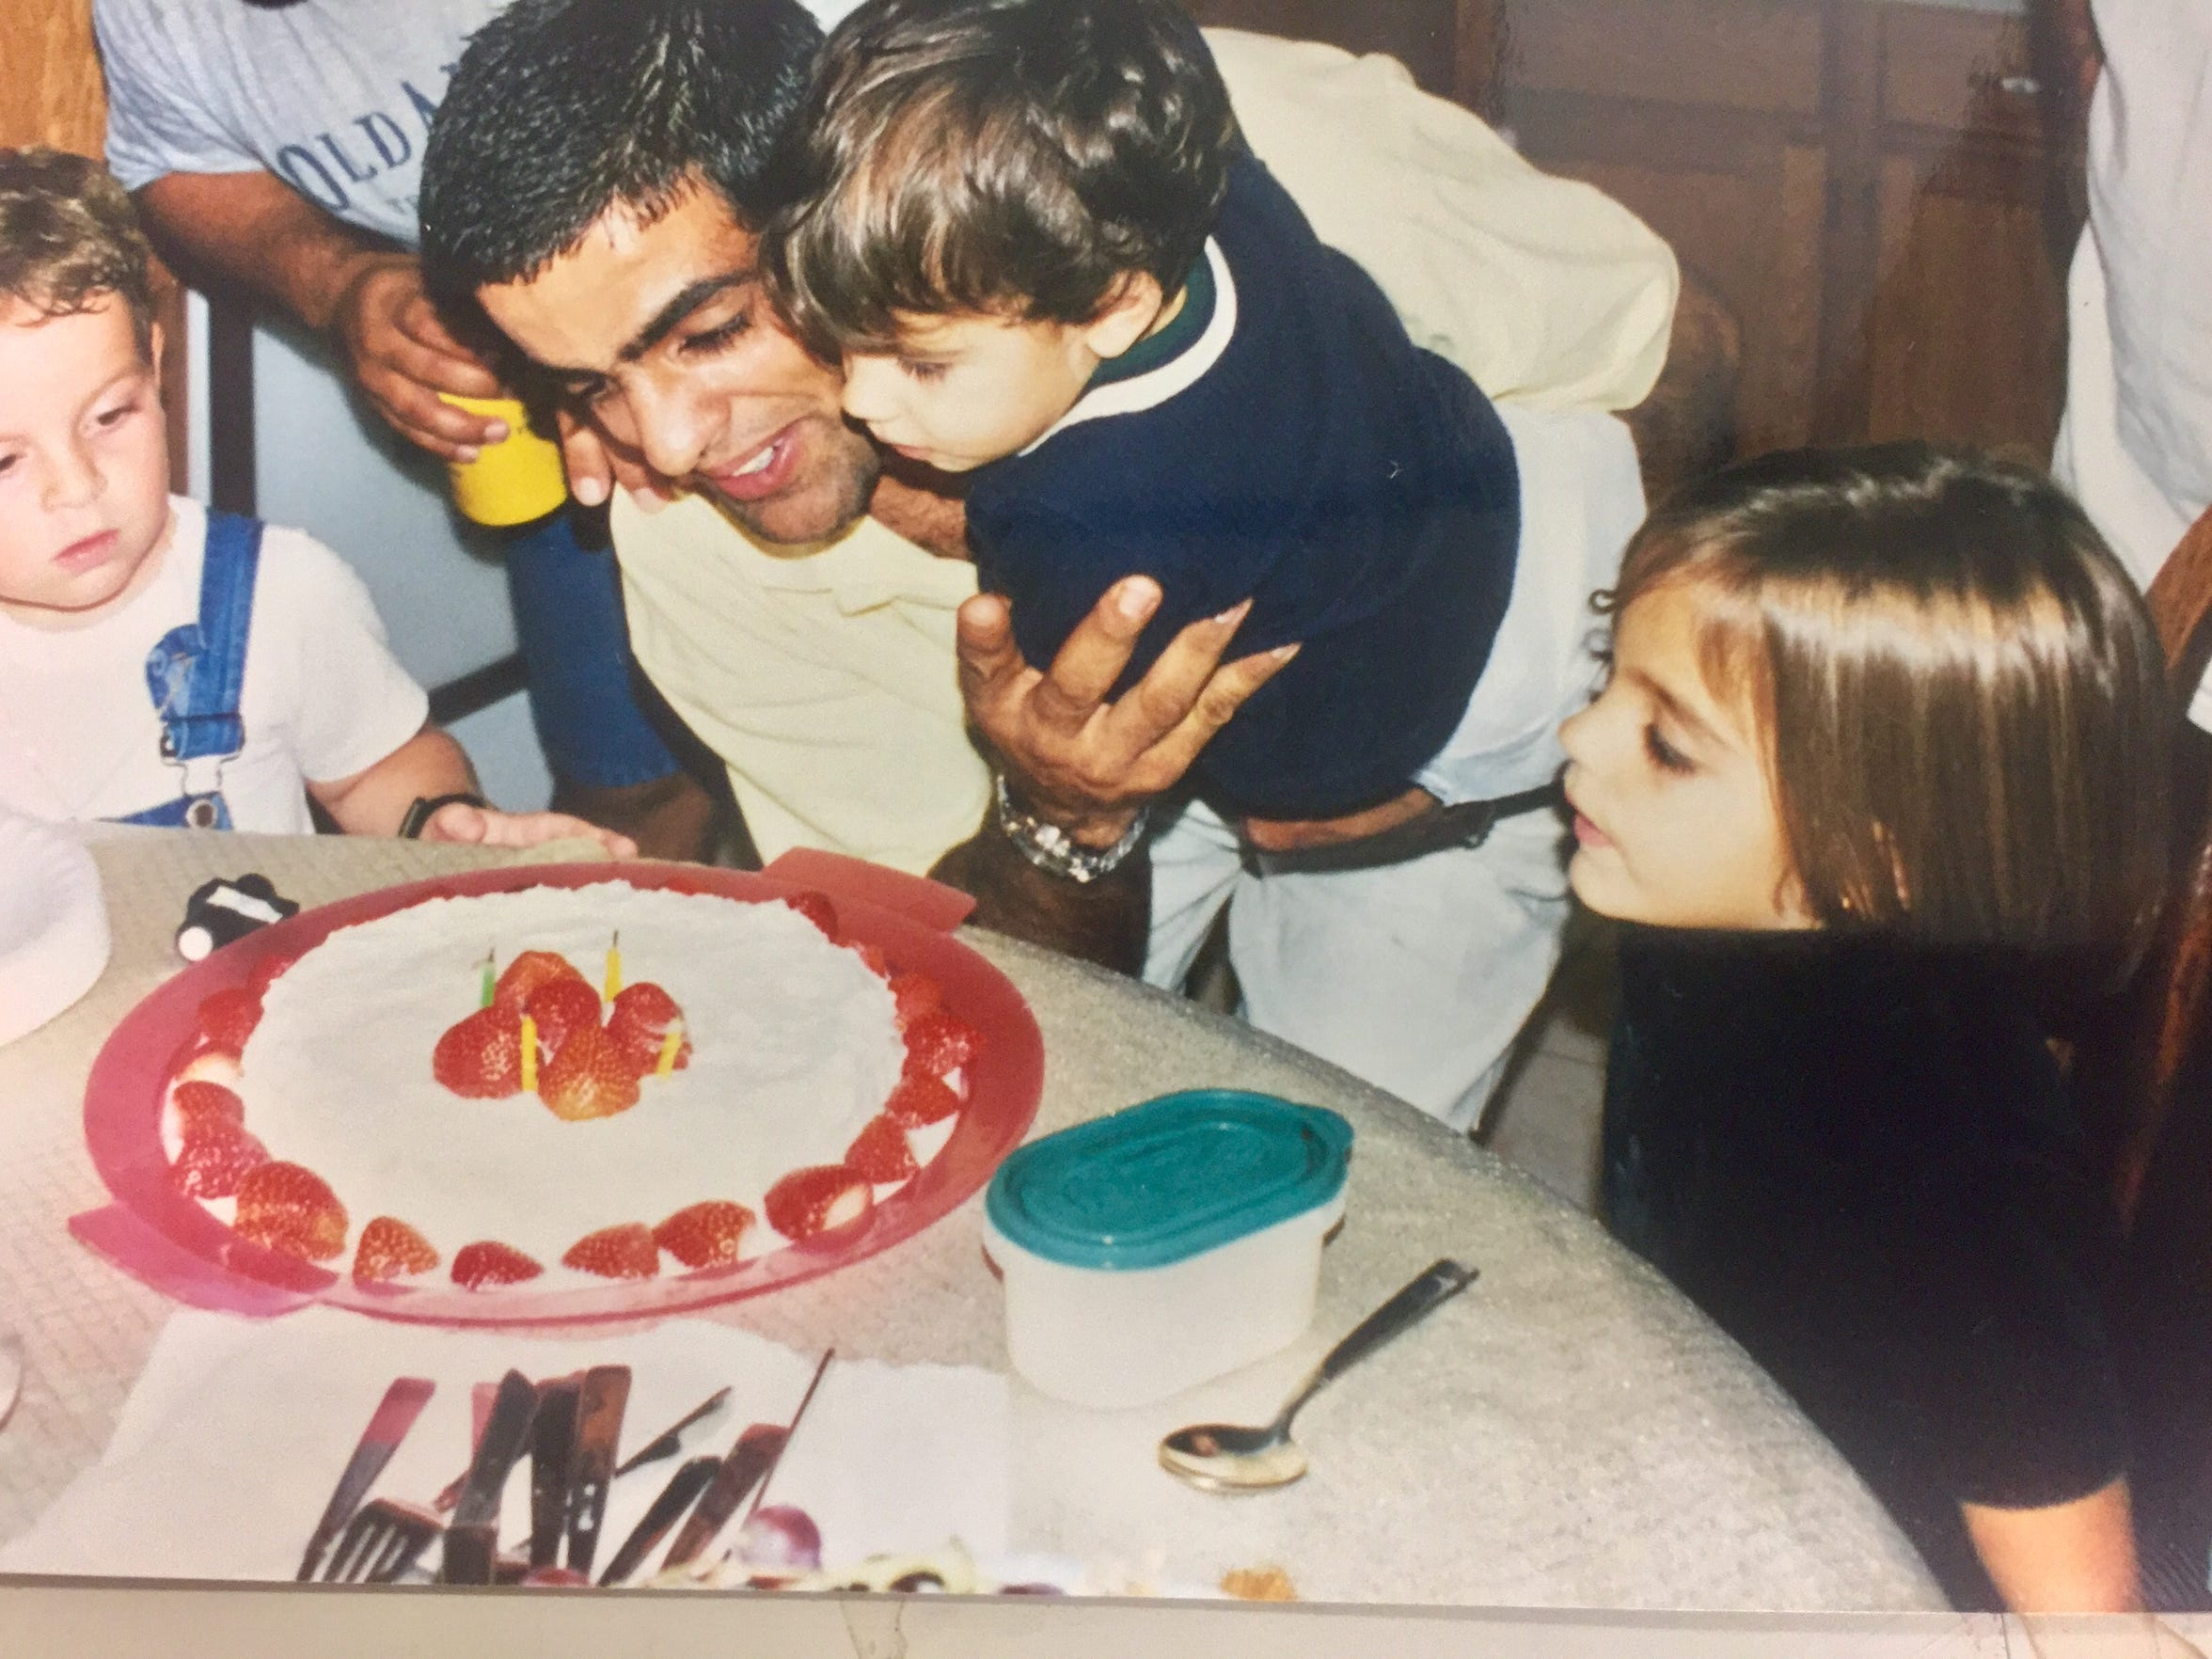 Rudy Blanco celebrates his birthday while holding his son Noah. His daughter Hannah is on the right.